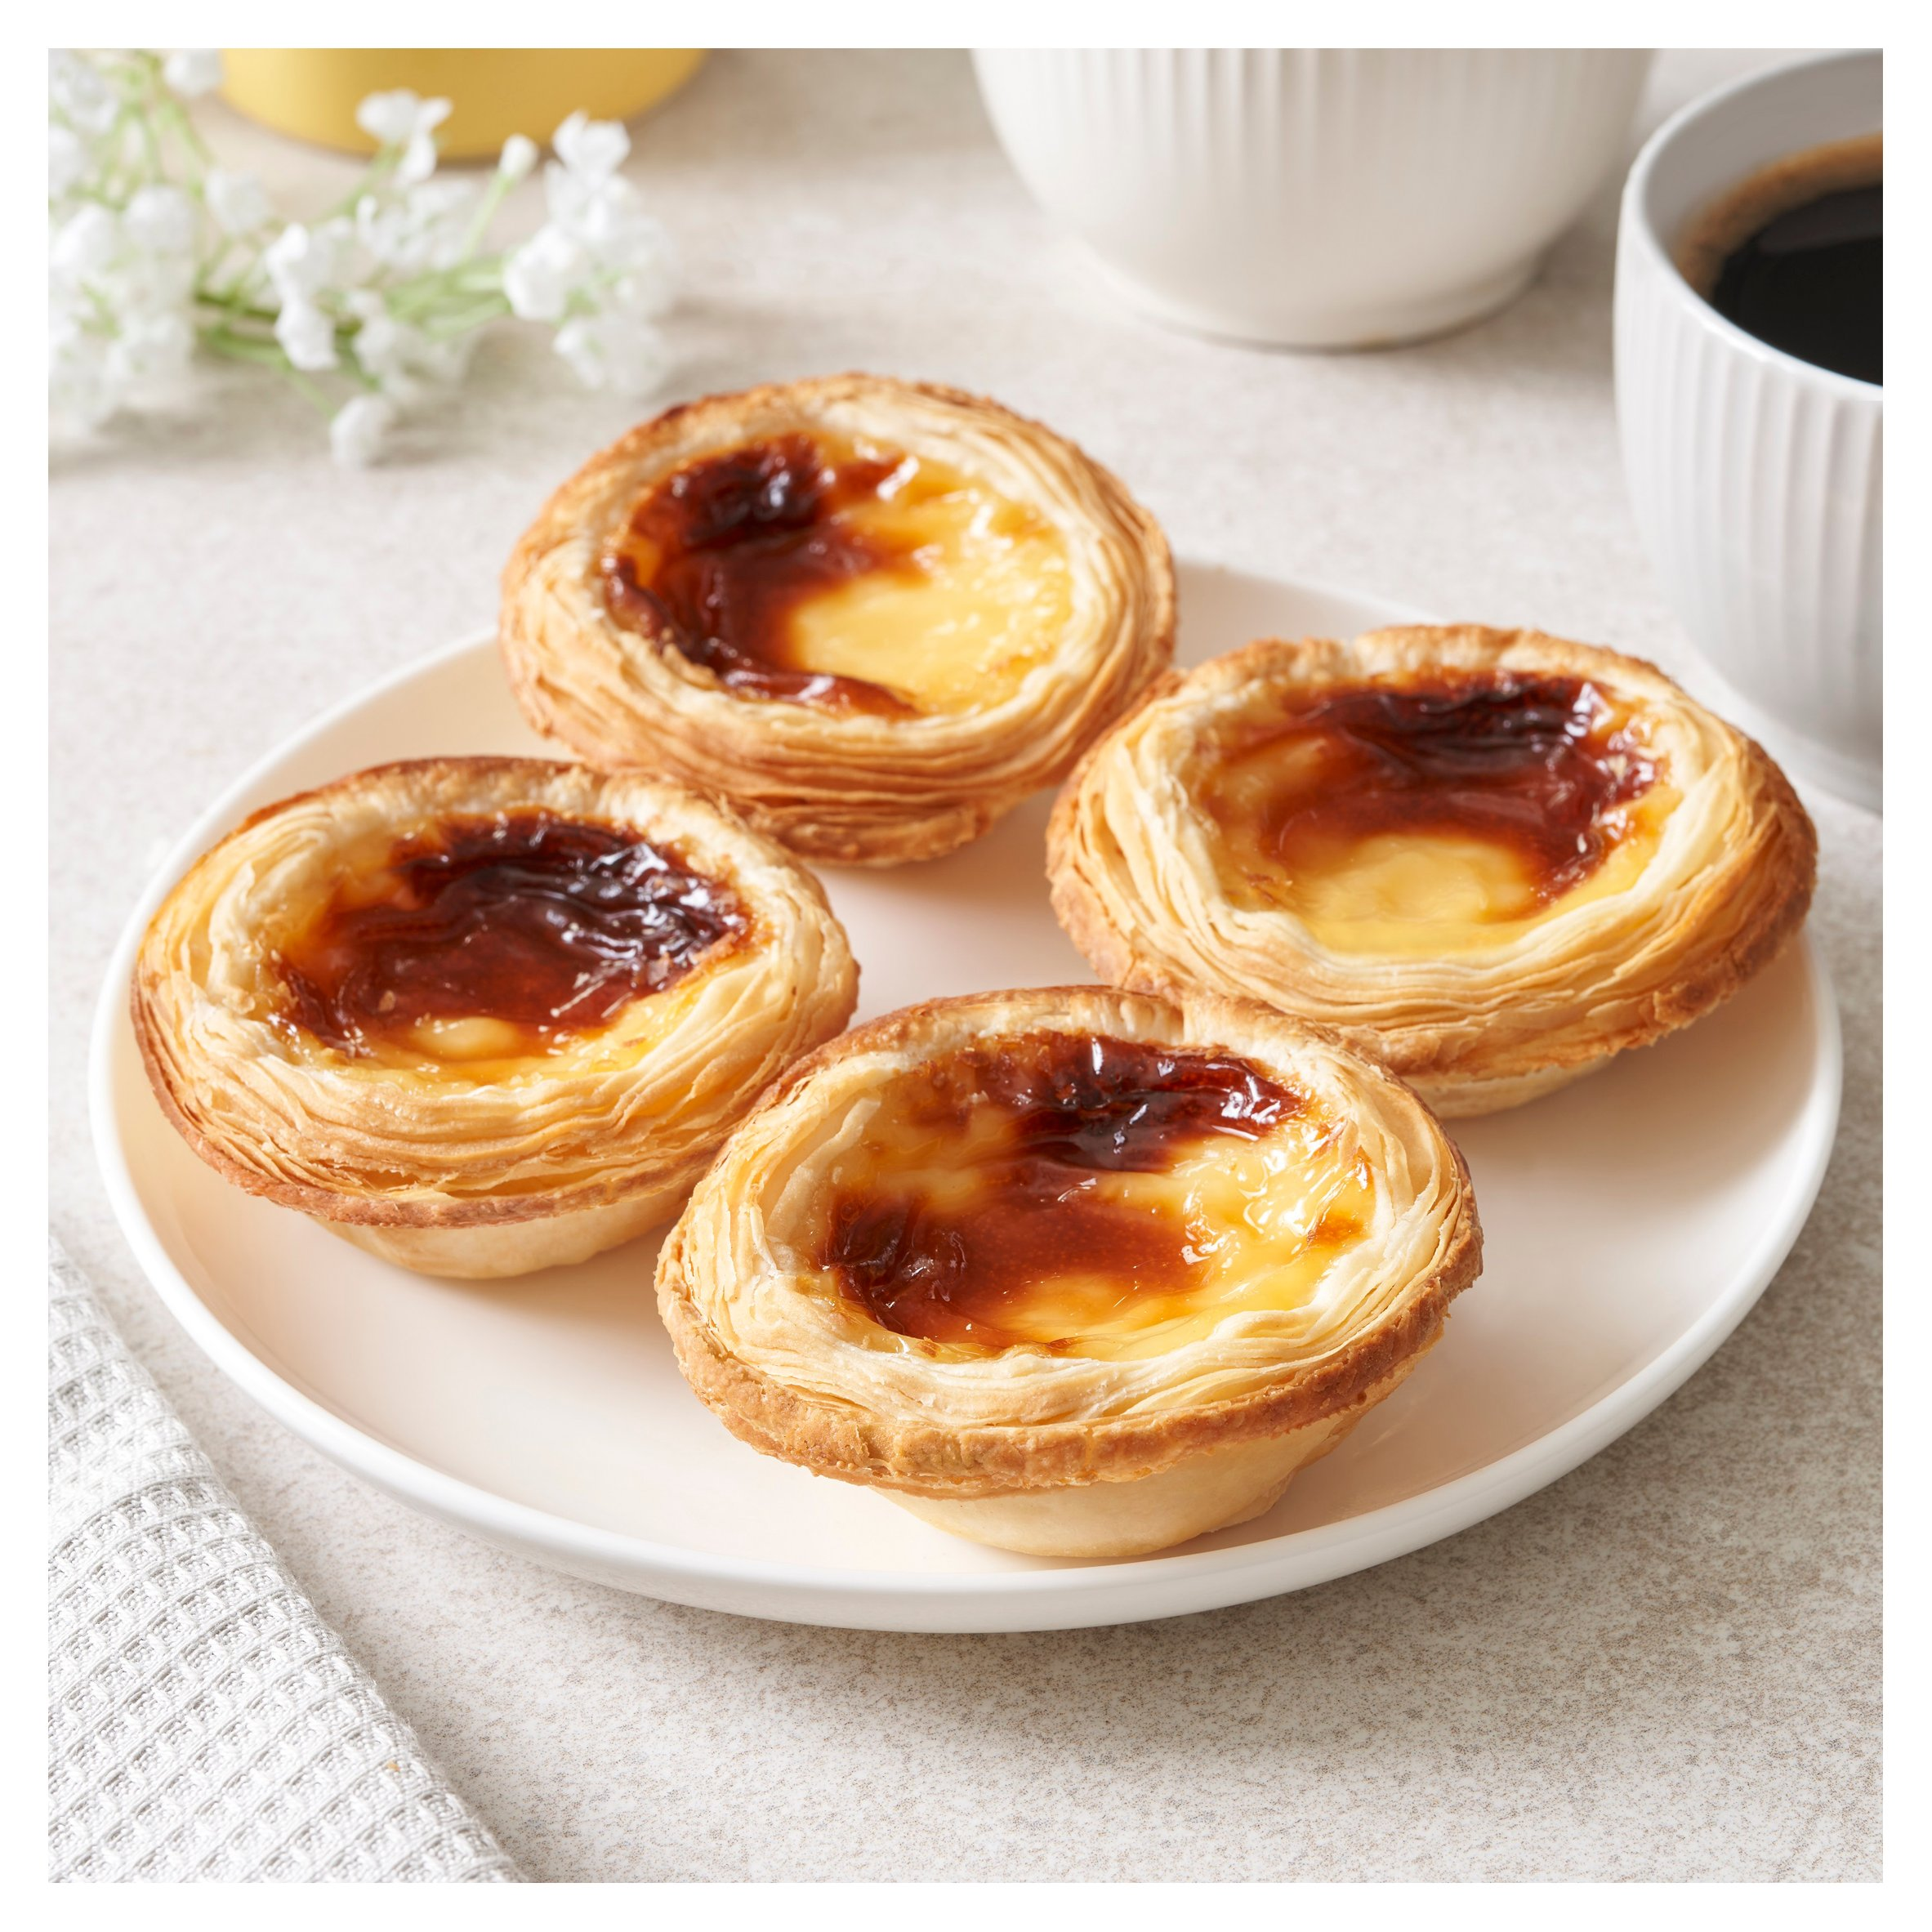 Tesco Portuguese Custard Tart 4 Pack